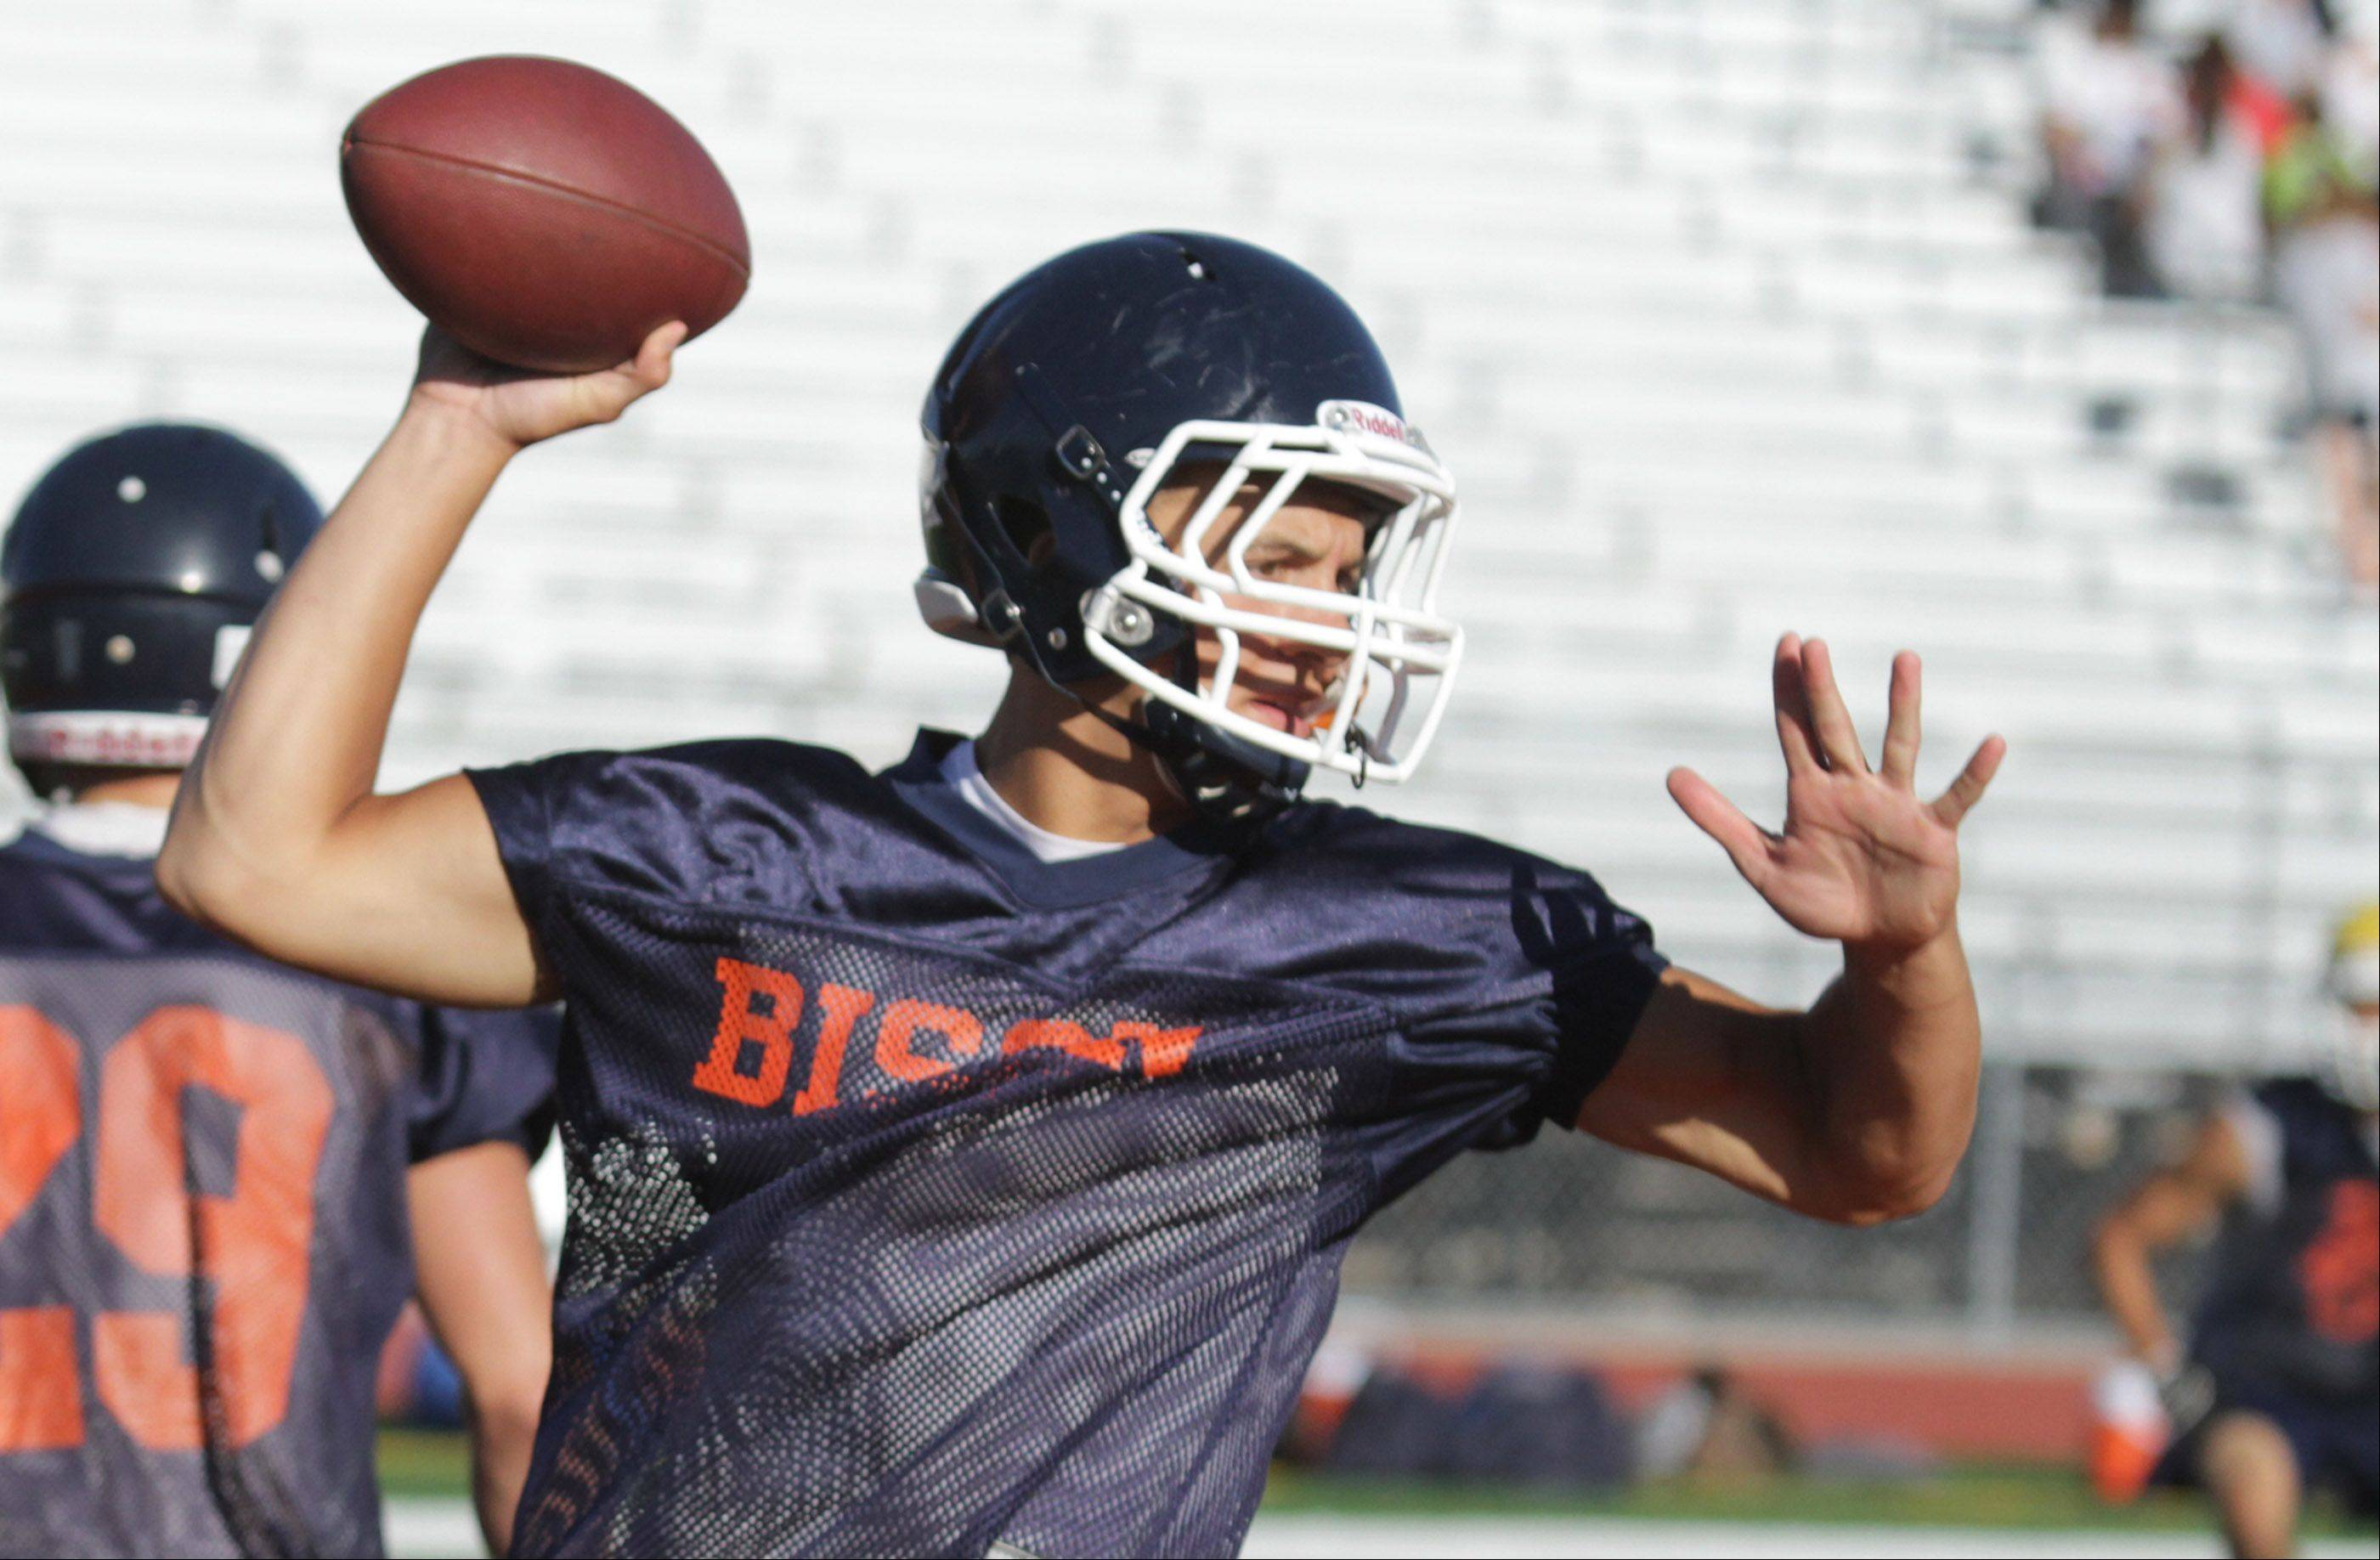 Buffalo Grove High School starting quarterback Andrew Apel passes.